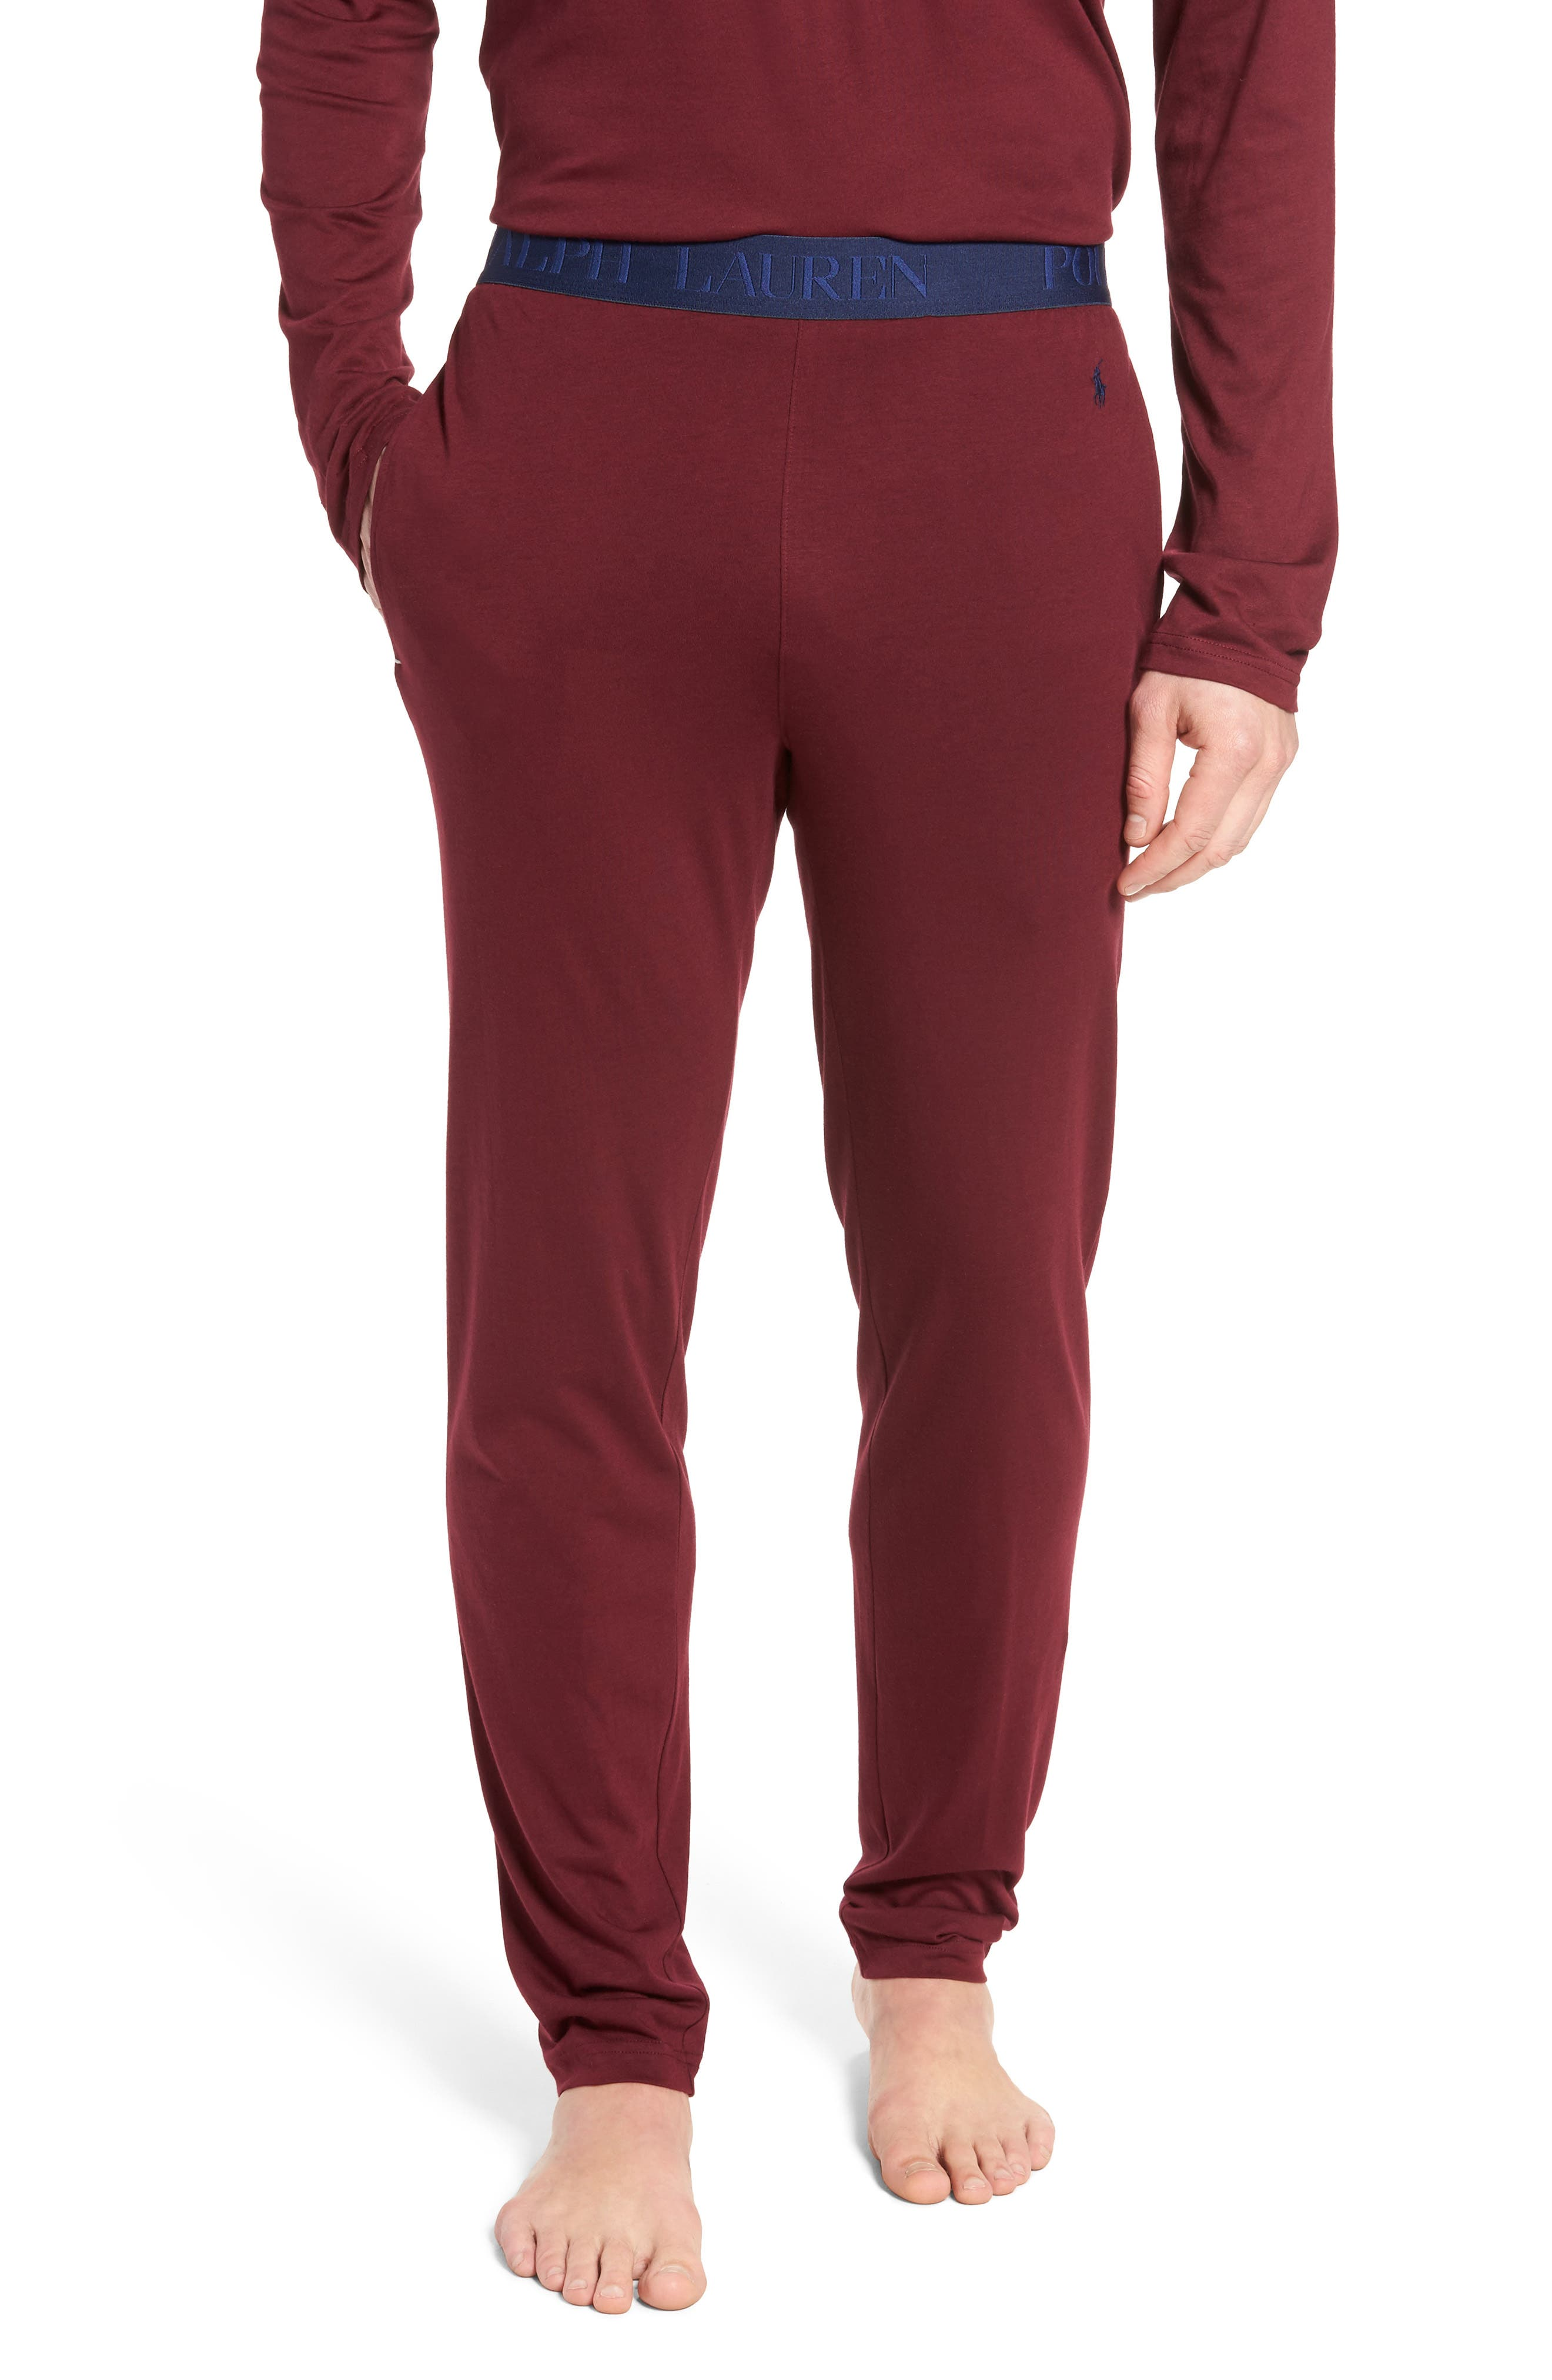 Cotton & Modal Lounge Pants,                         Main,                         color, Classic Wine/ Cruise Navy